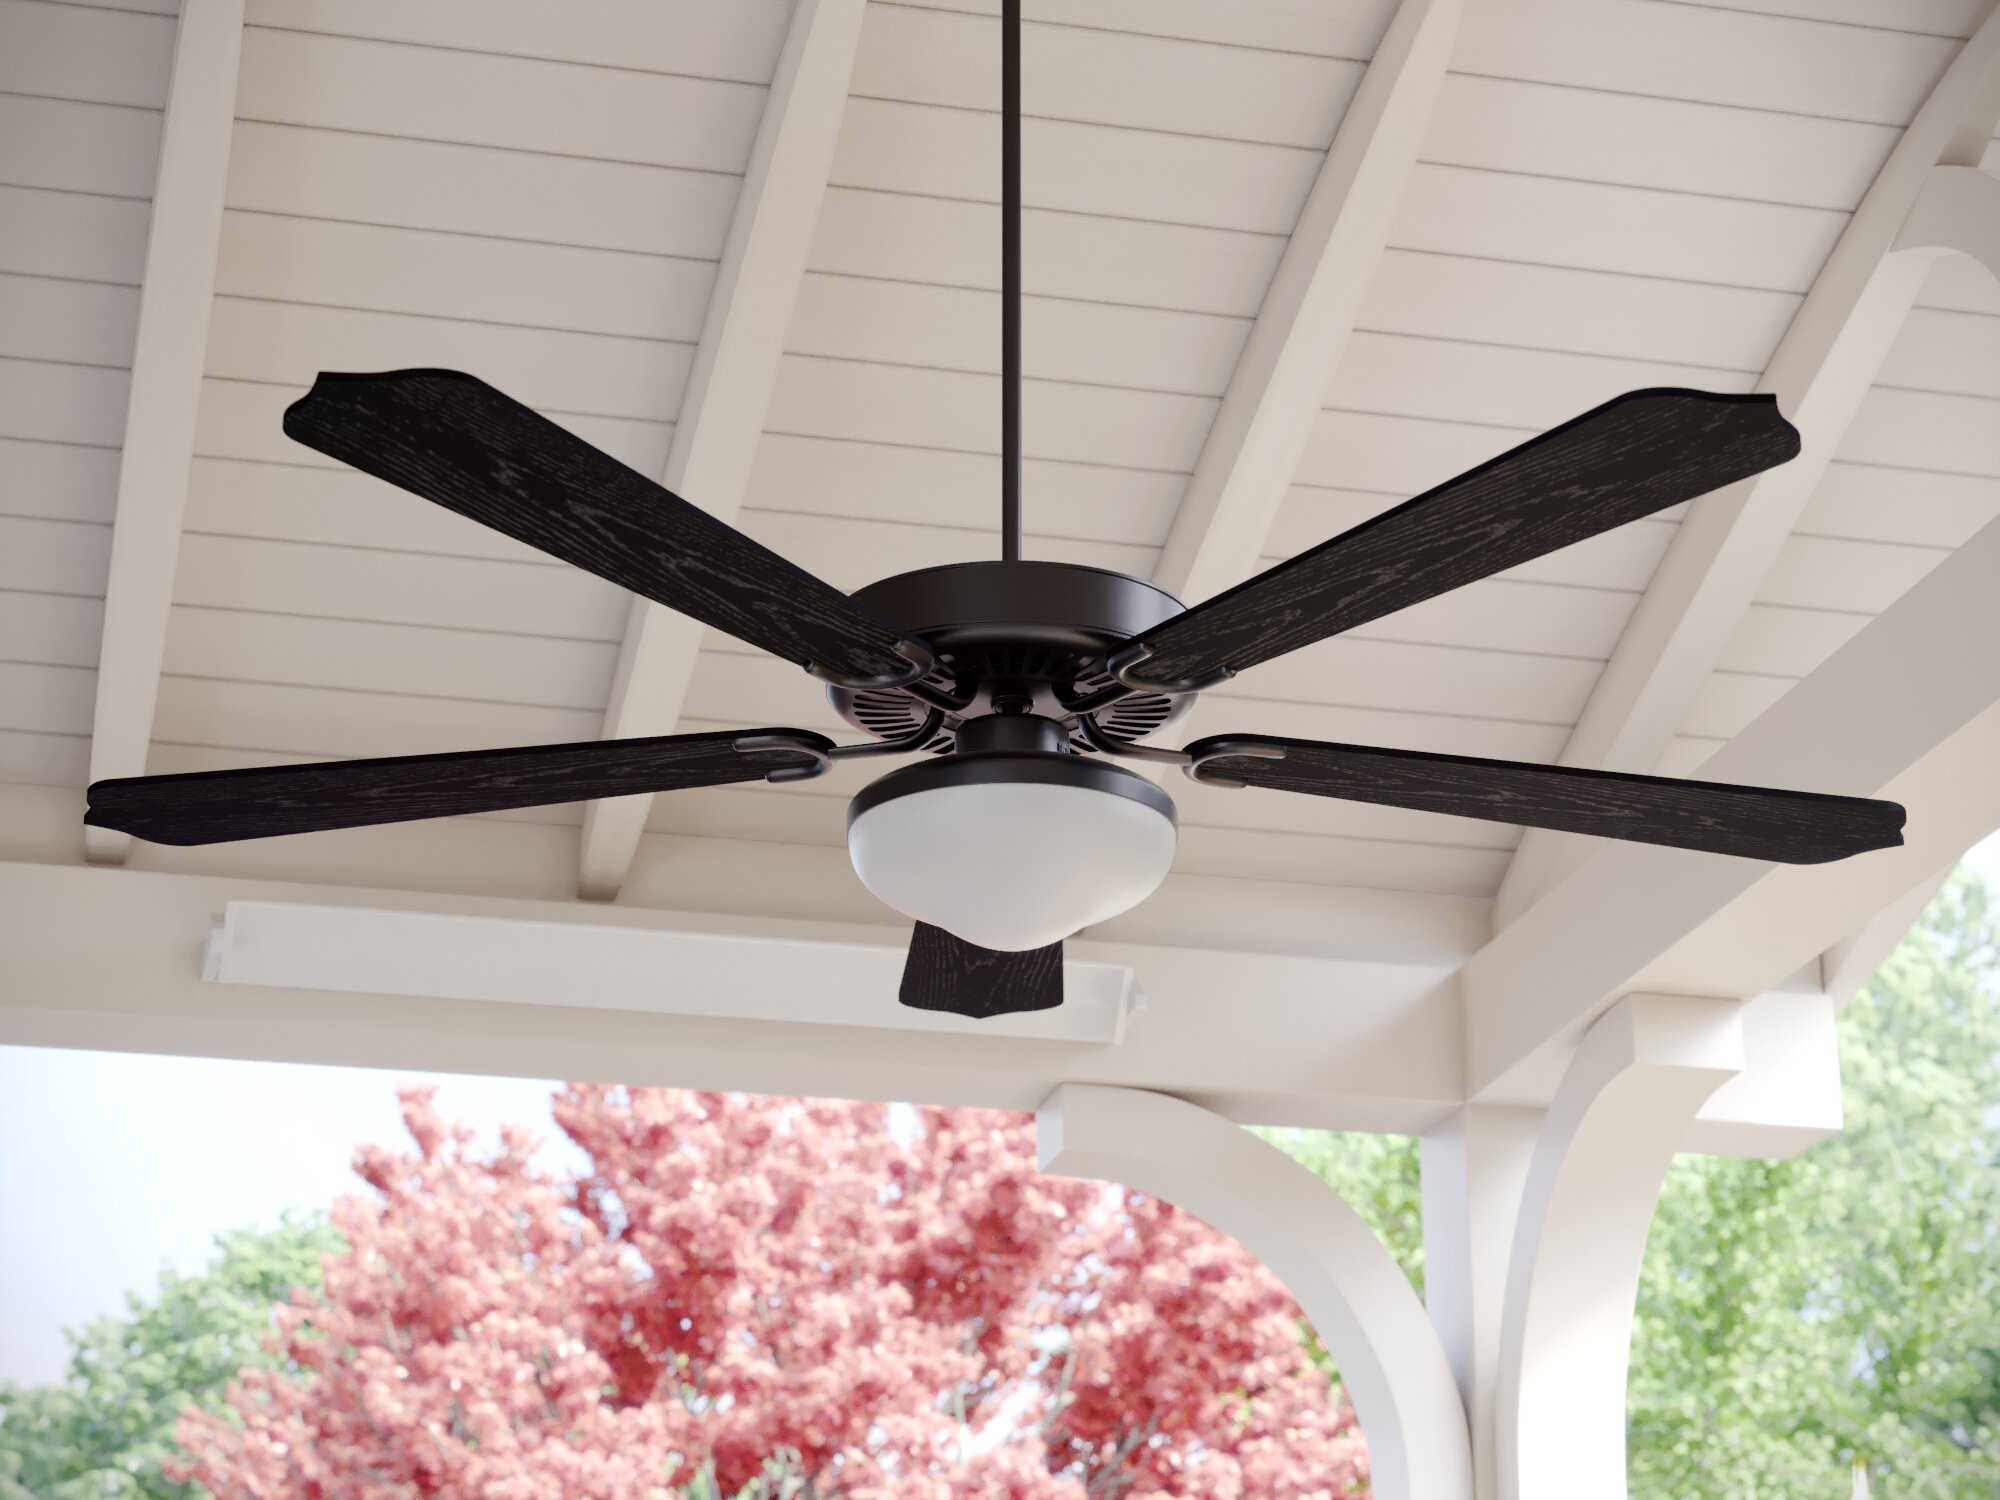 blog ceiling from should you questions design know outdoor fans about carlo dylan monte lighting fan what necessities company